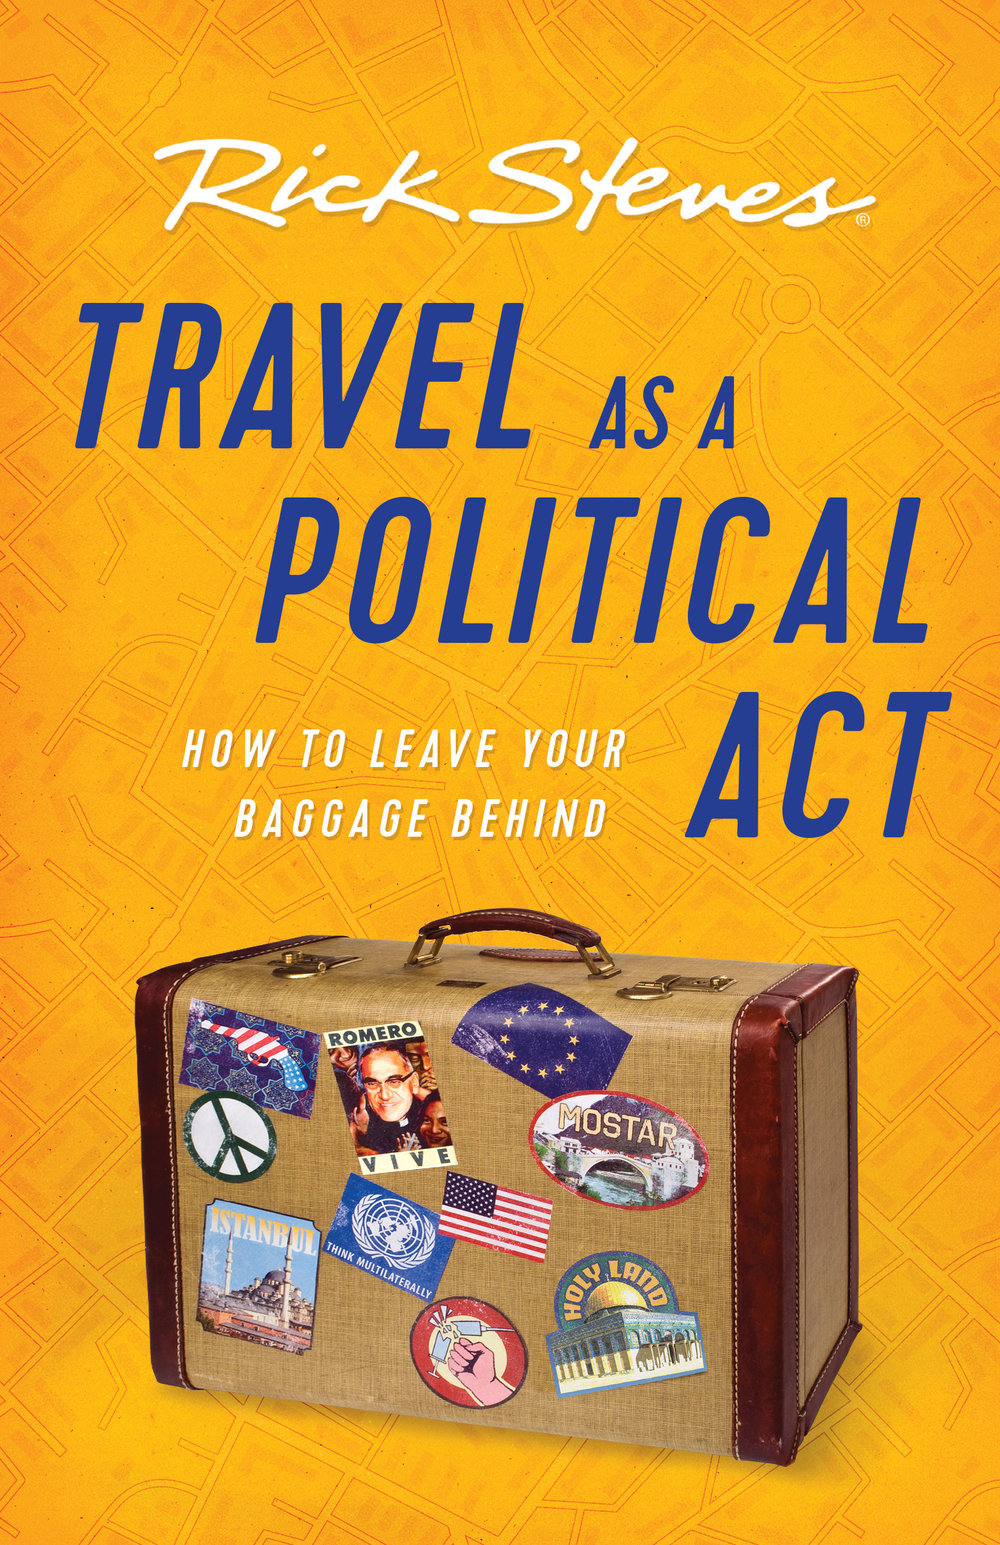 Travel as a Political Act-REV5    (2).jpg